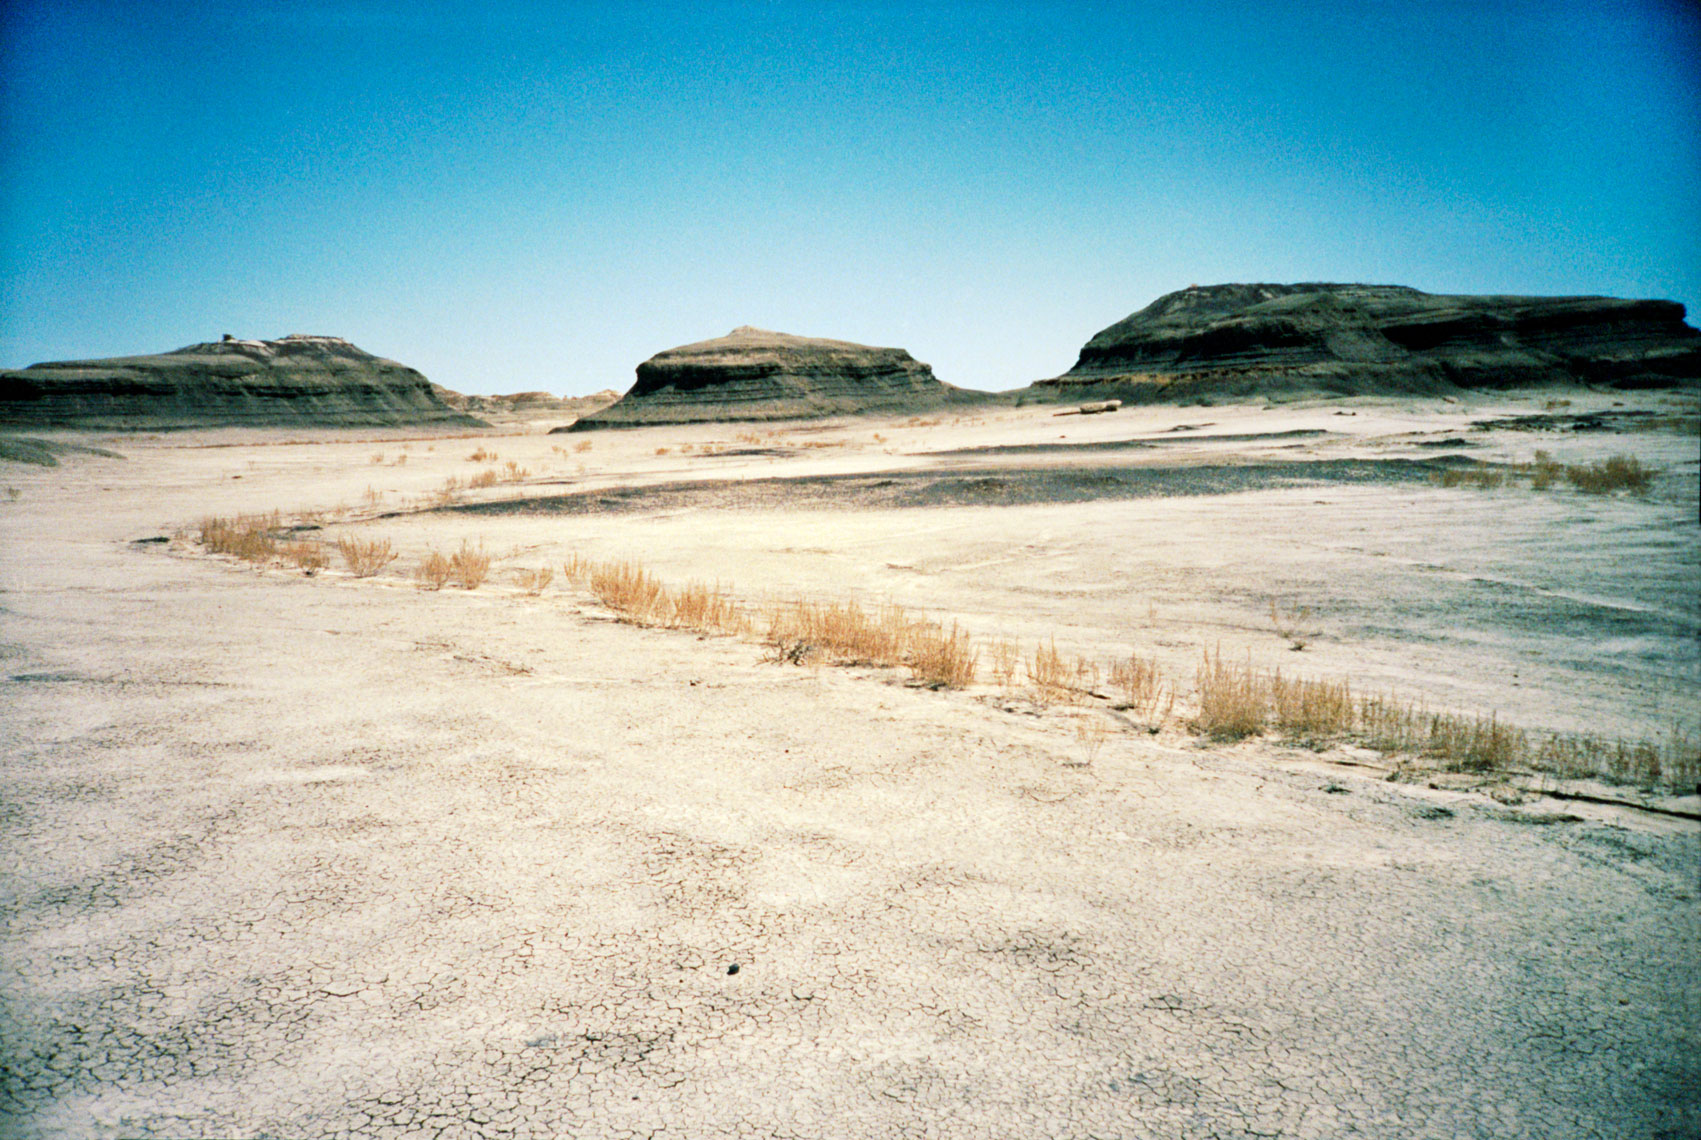 Bisti Badlands, De-Na-Zin Wilderness, New Mexico